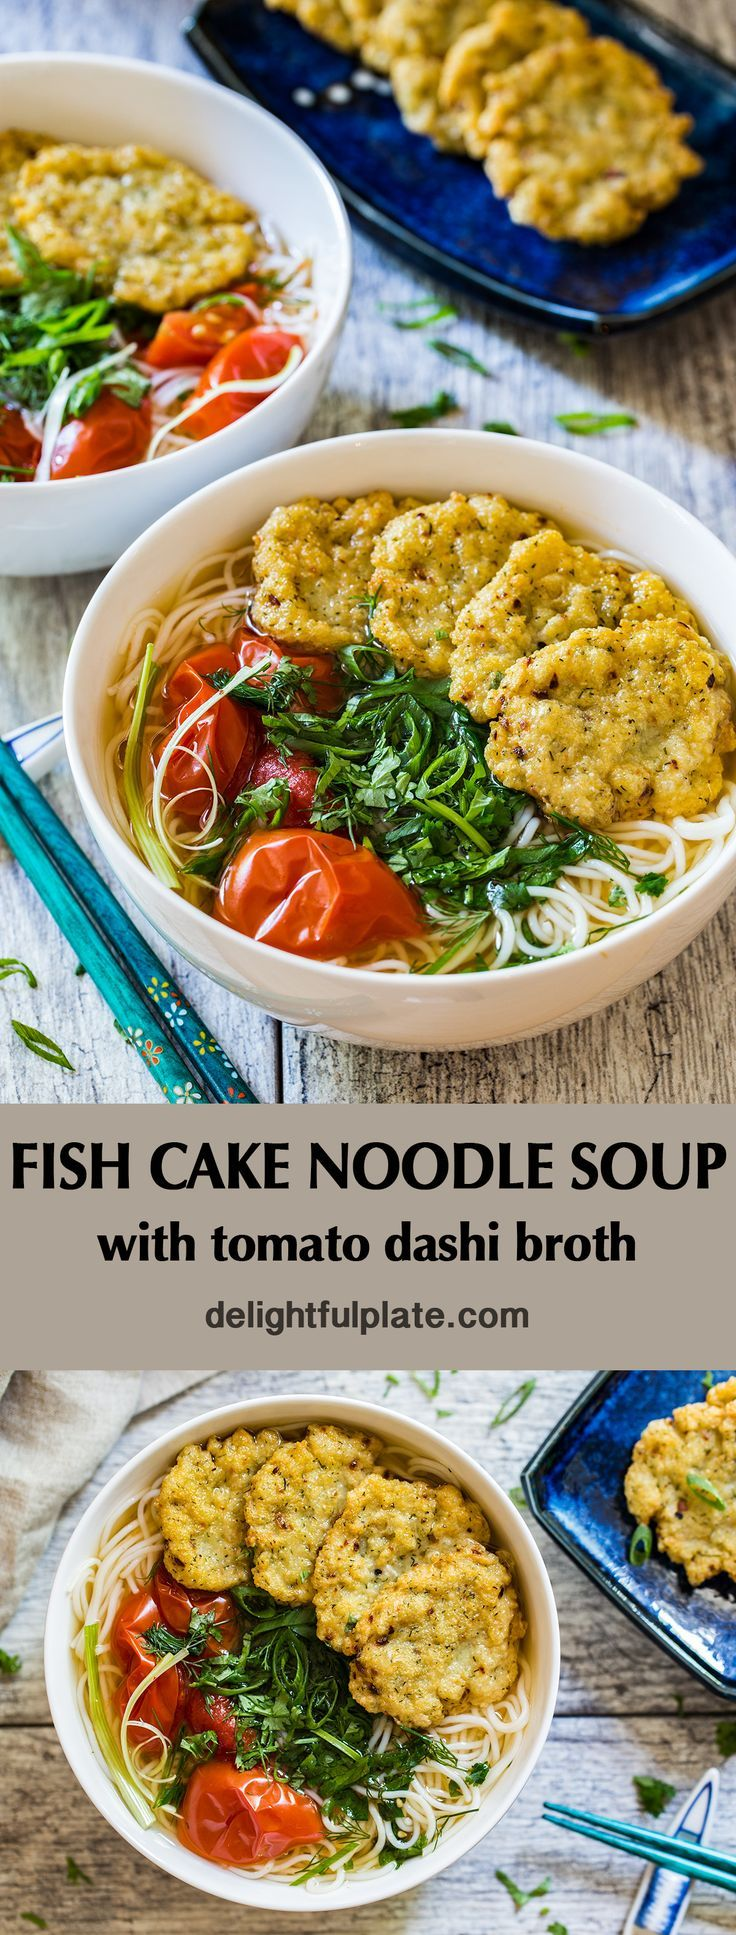 Noodle soup: tasty and satisfying 71